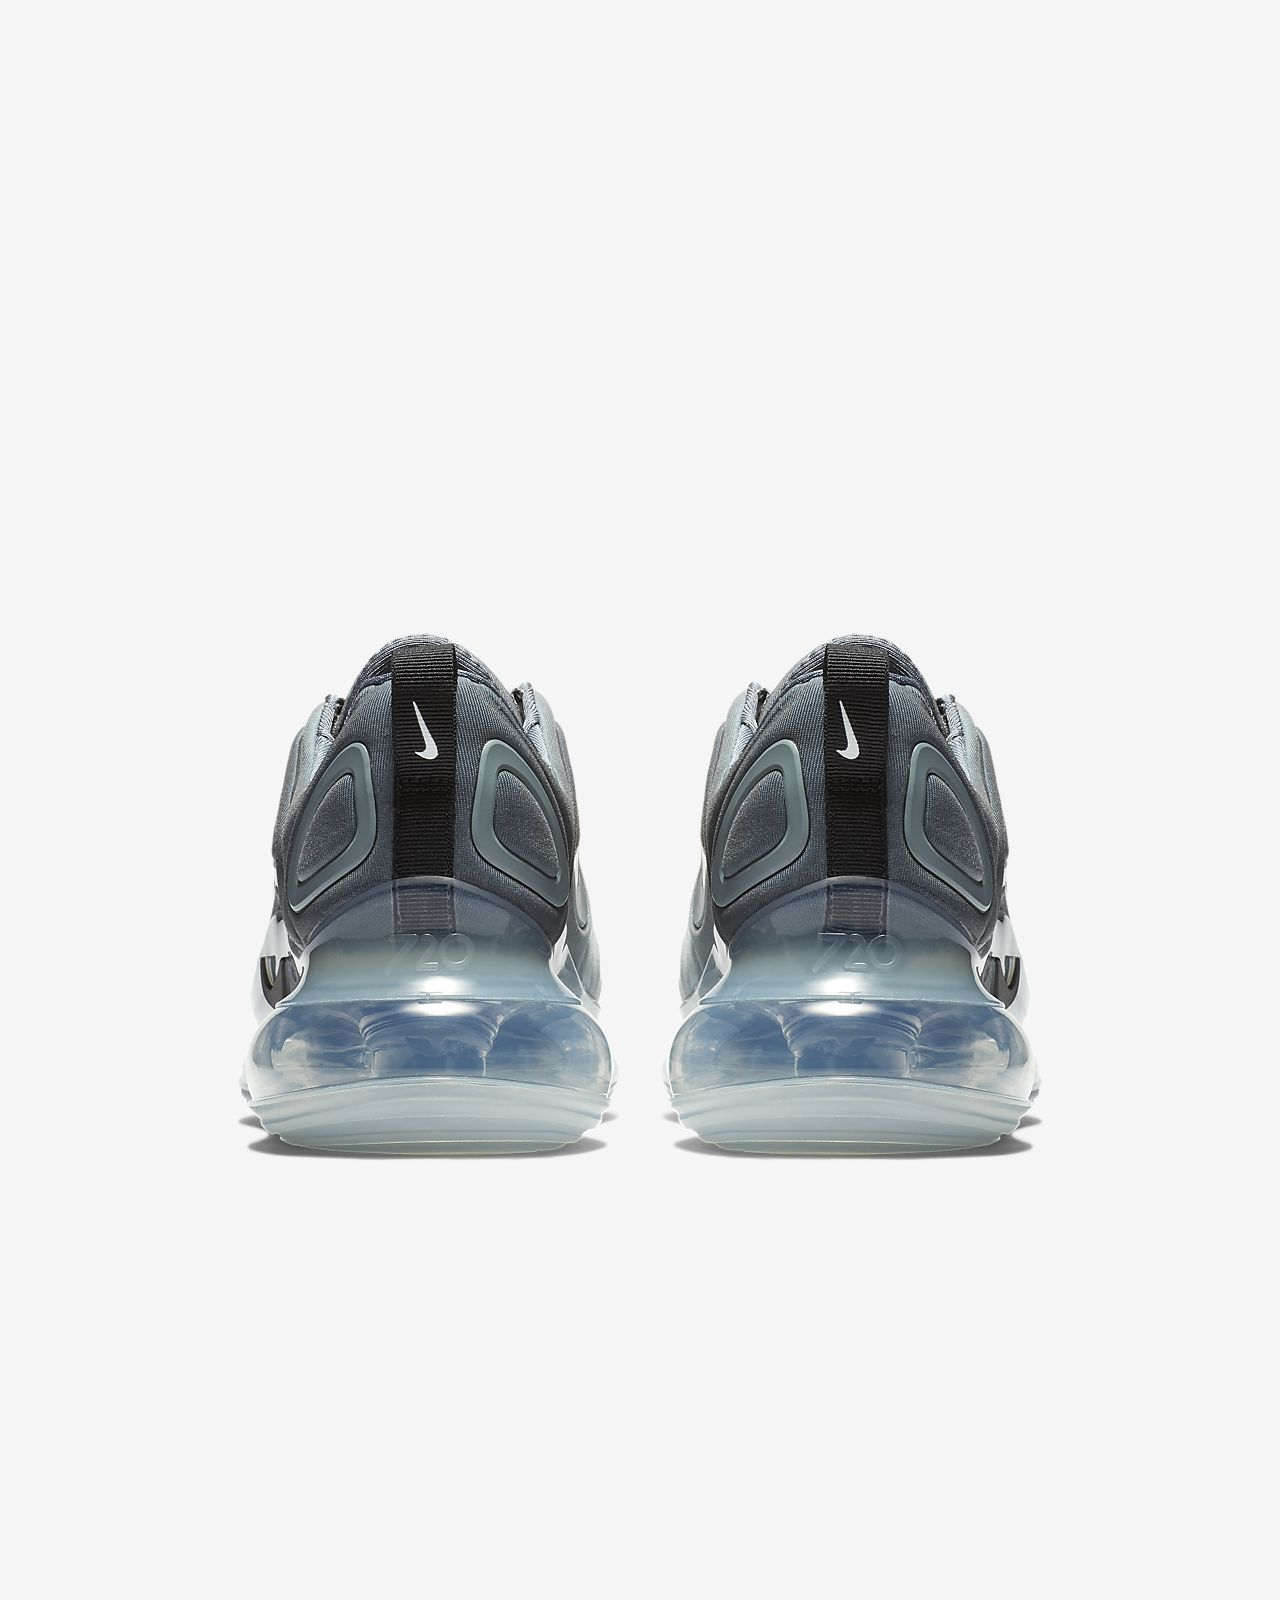 promo code 4a981 ef305 ... Chaussure Nike Air Max 720 pour Femme